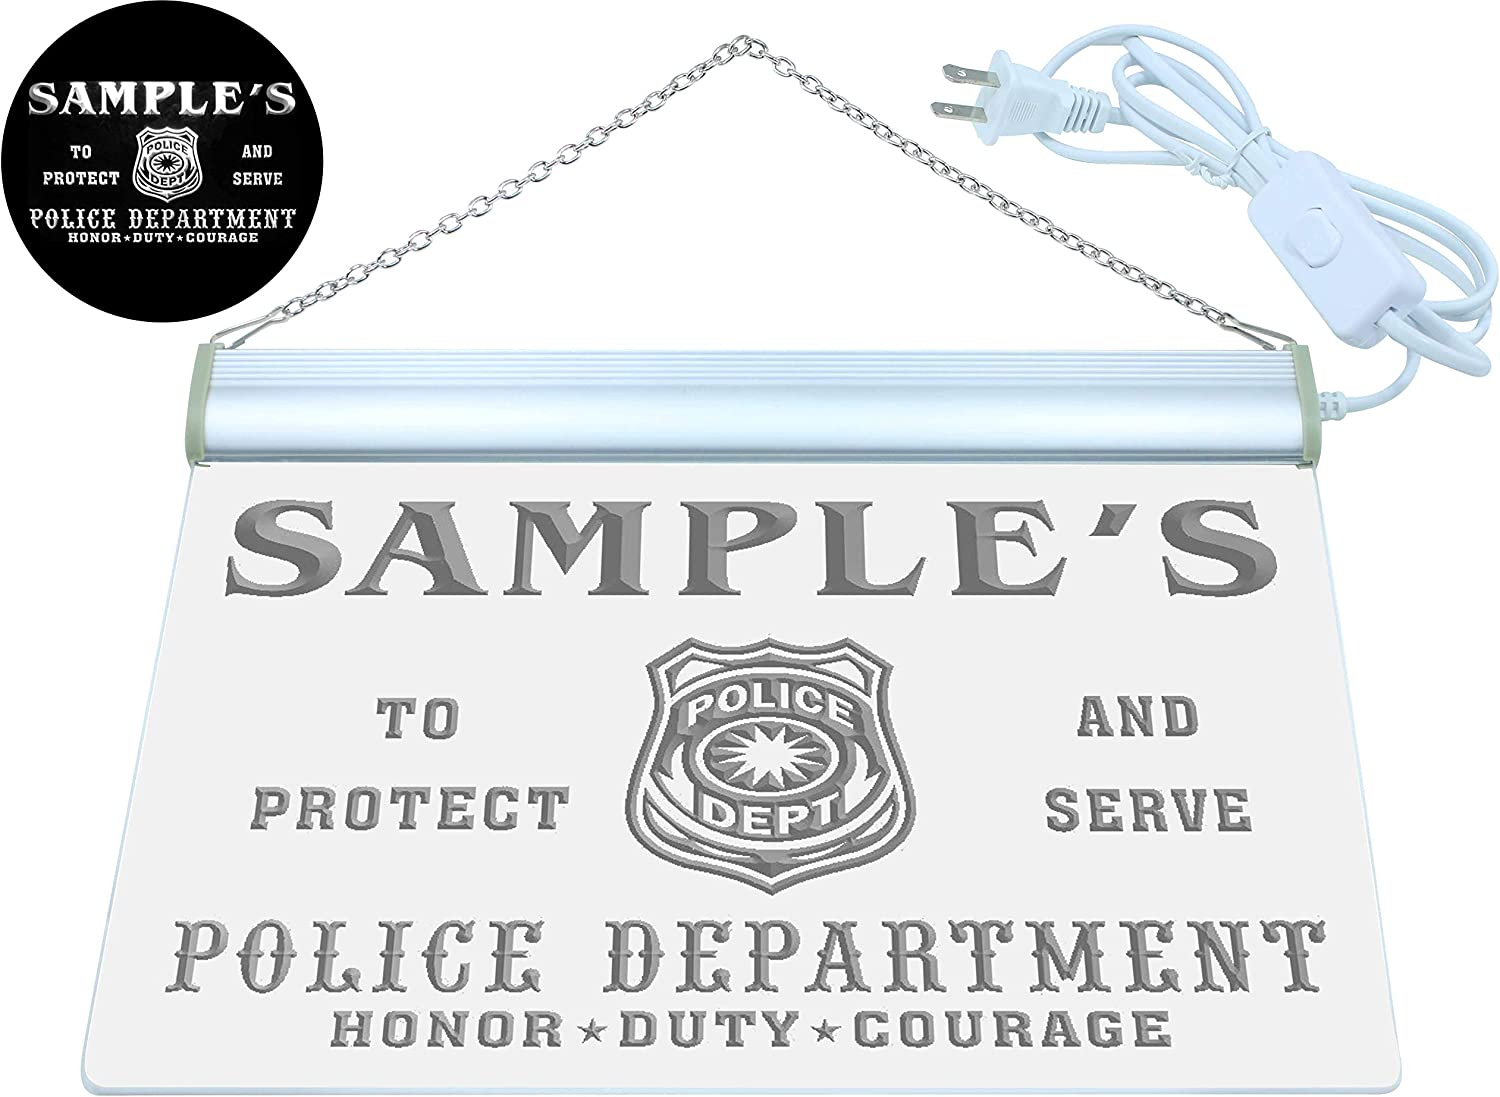 Name Personalized Custom Police Station Badge Bar Beer Neon Sign White 24x16 inches st4s64-tk-tm-w